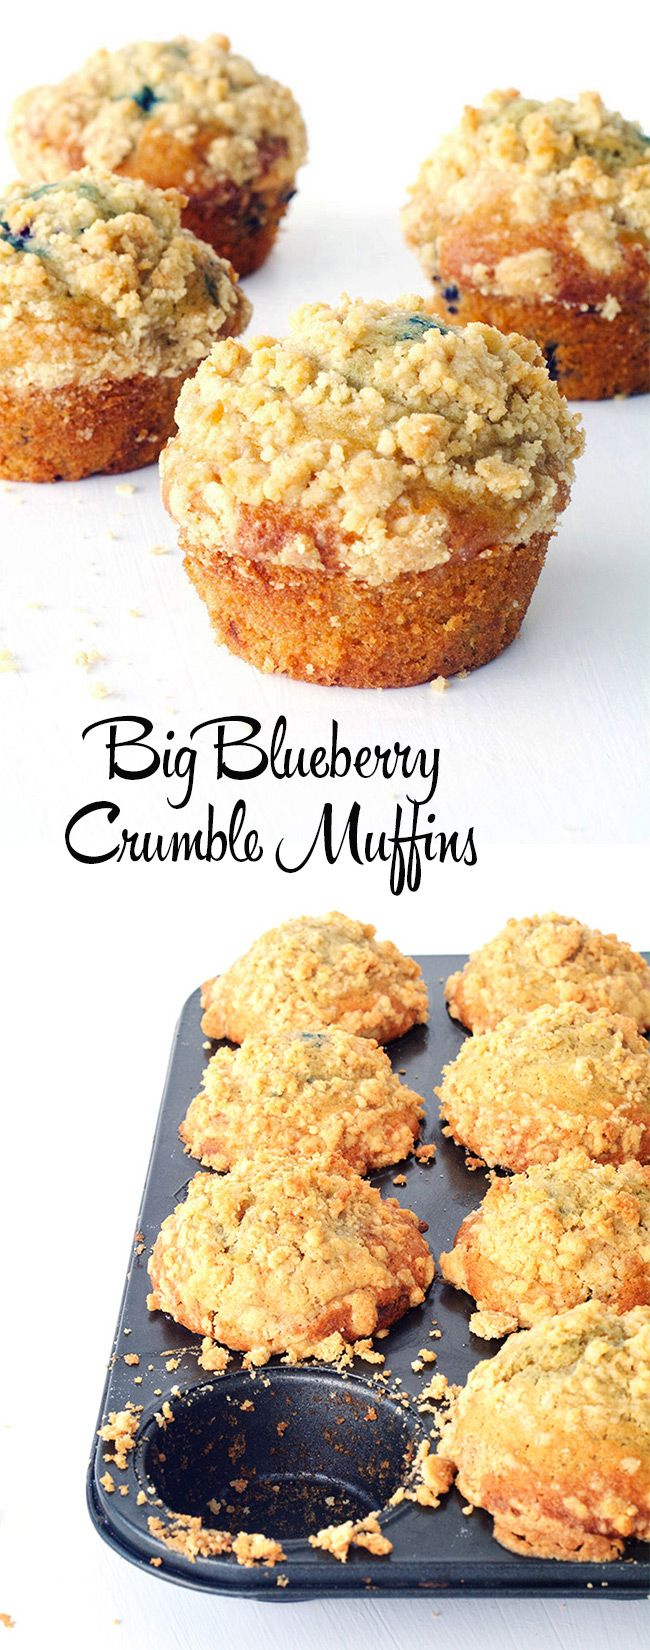 Learn how to make high top muffins at home! These Bakery-style Big Blueberry Crumble Muffins are so light and fluffy | Sweetest Menu